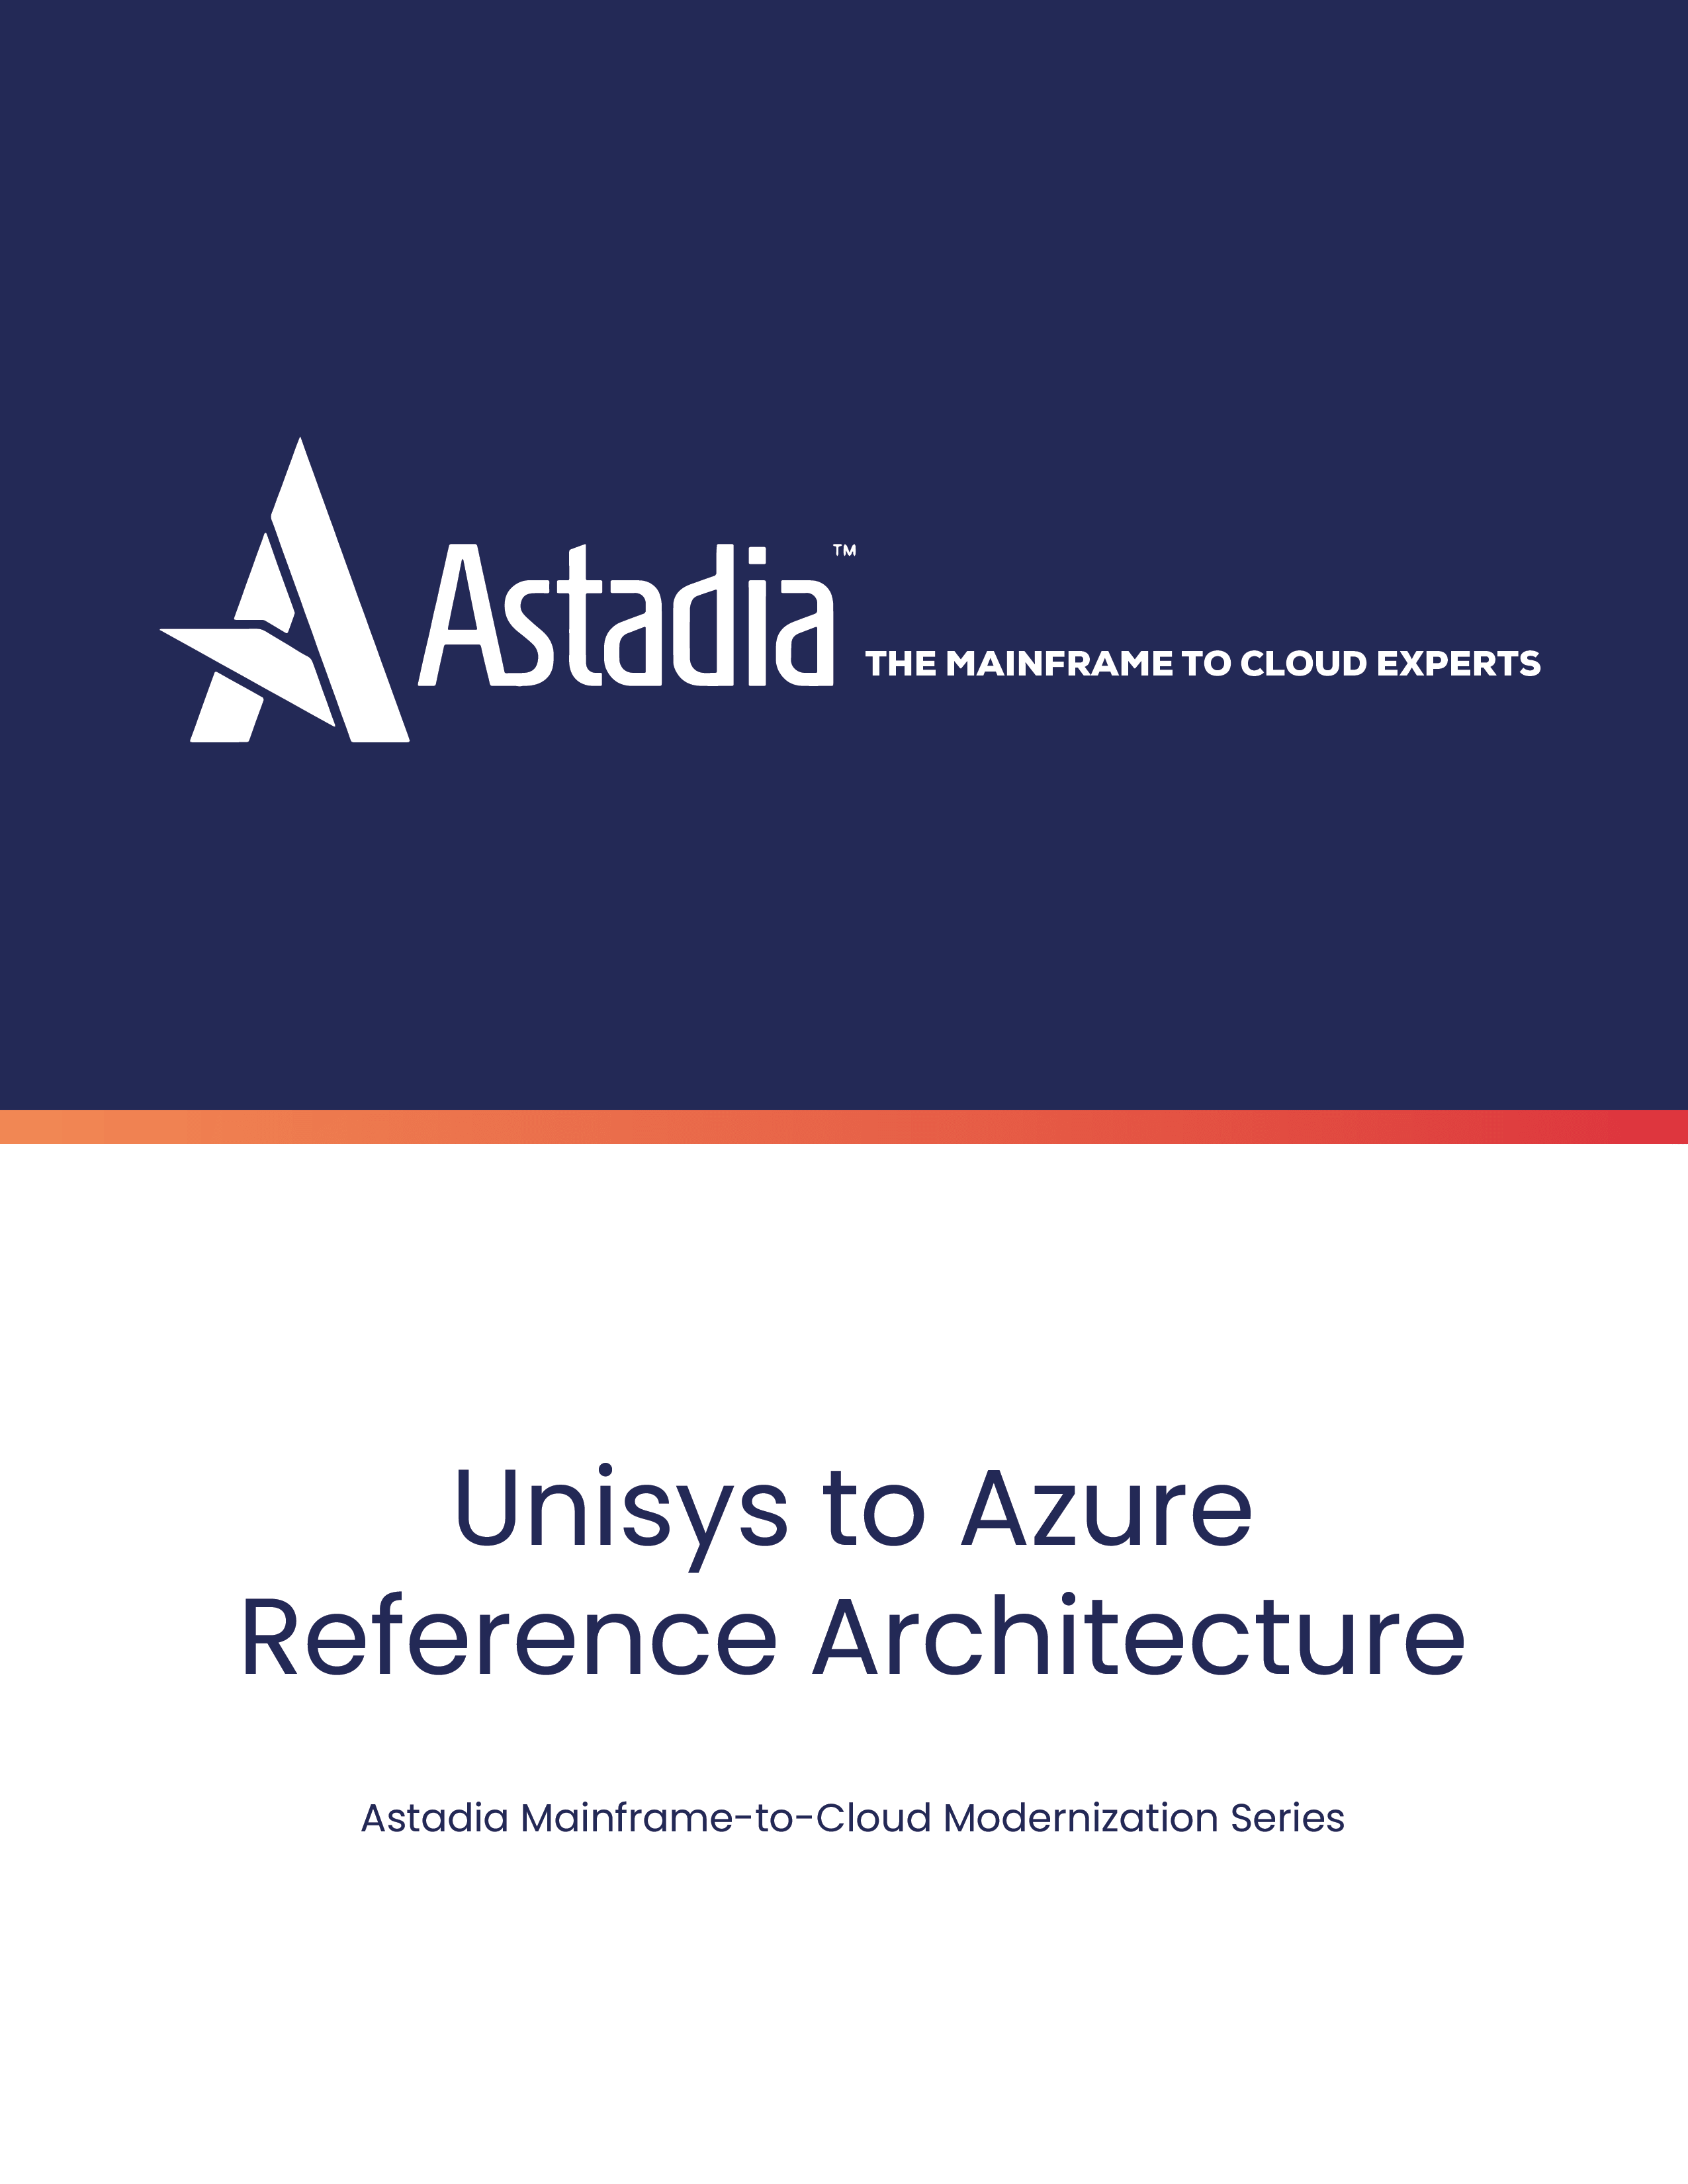 Unisys Mainframe to Microsoft Azure Reference Architecture